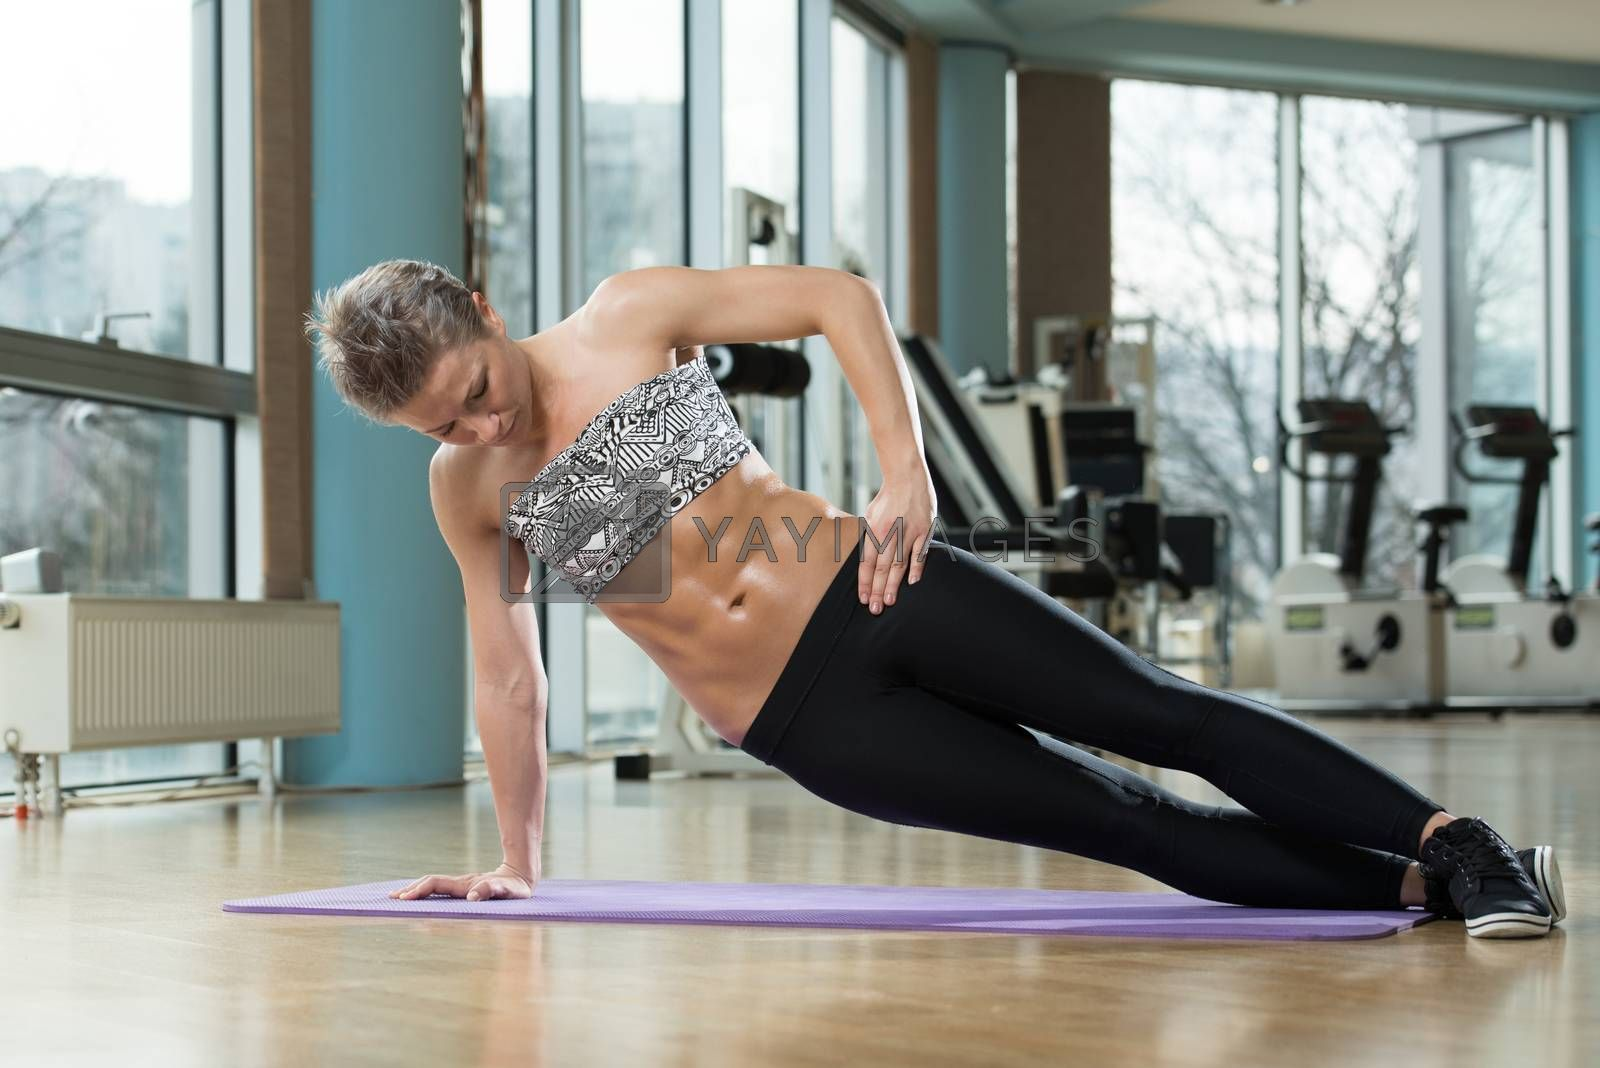 Attractive Female Athlete Performing Exercise For Abdominal Muscles